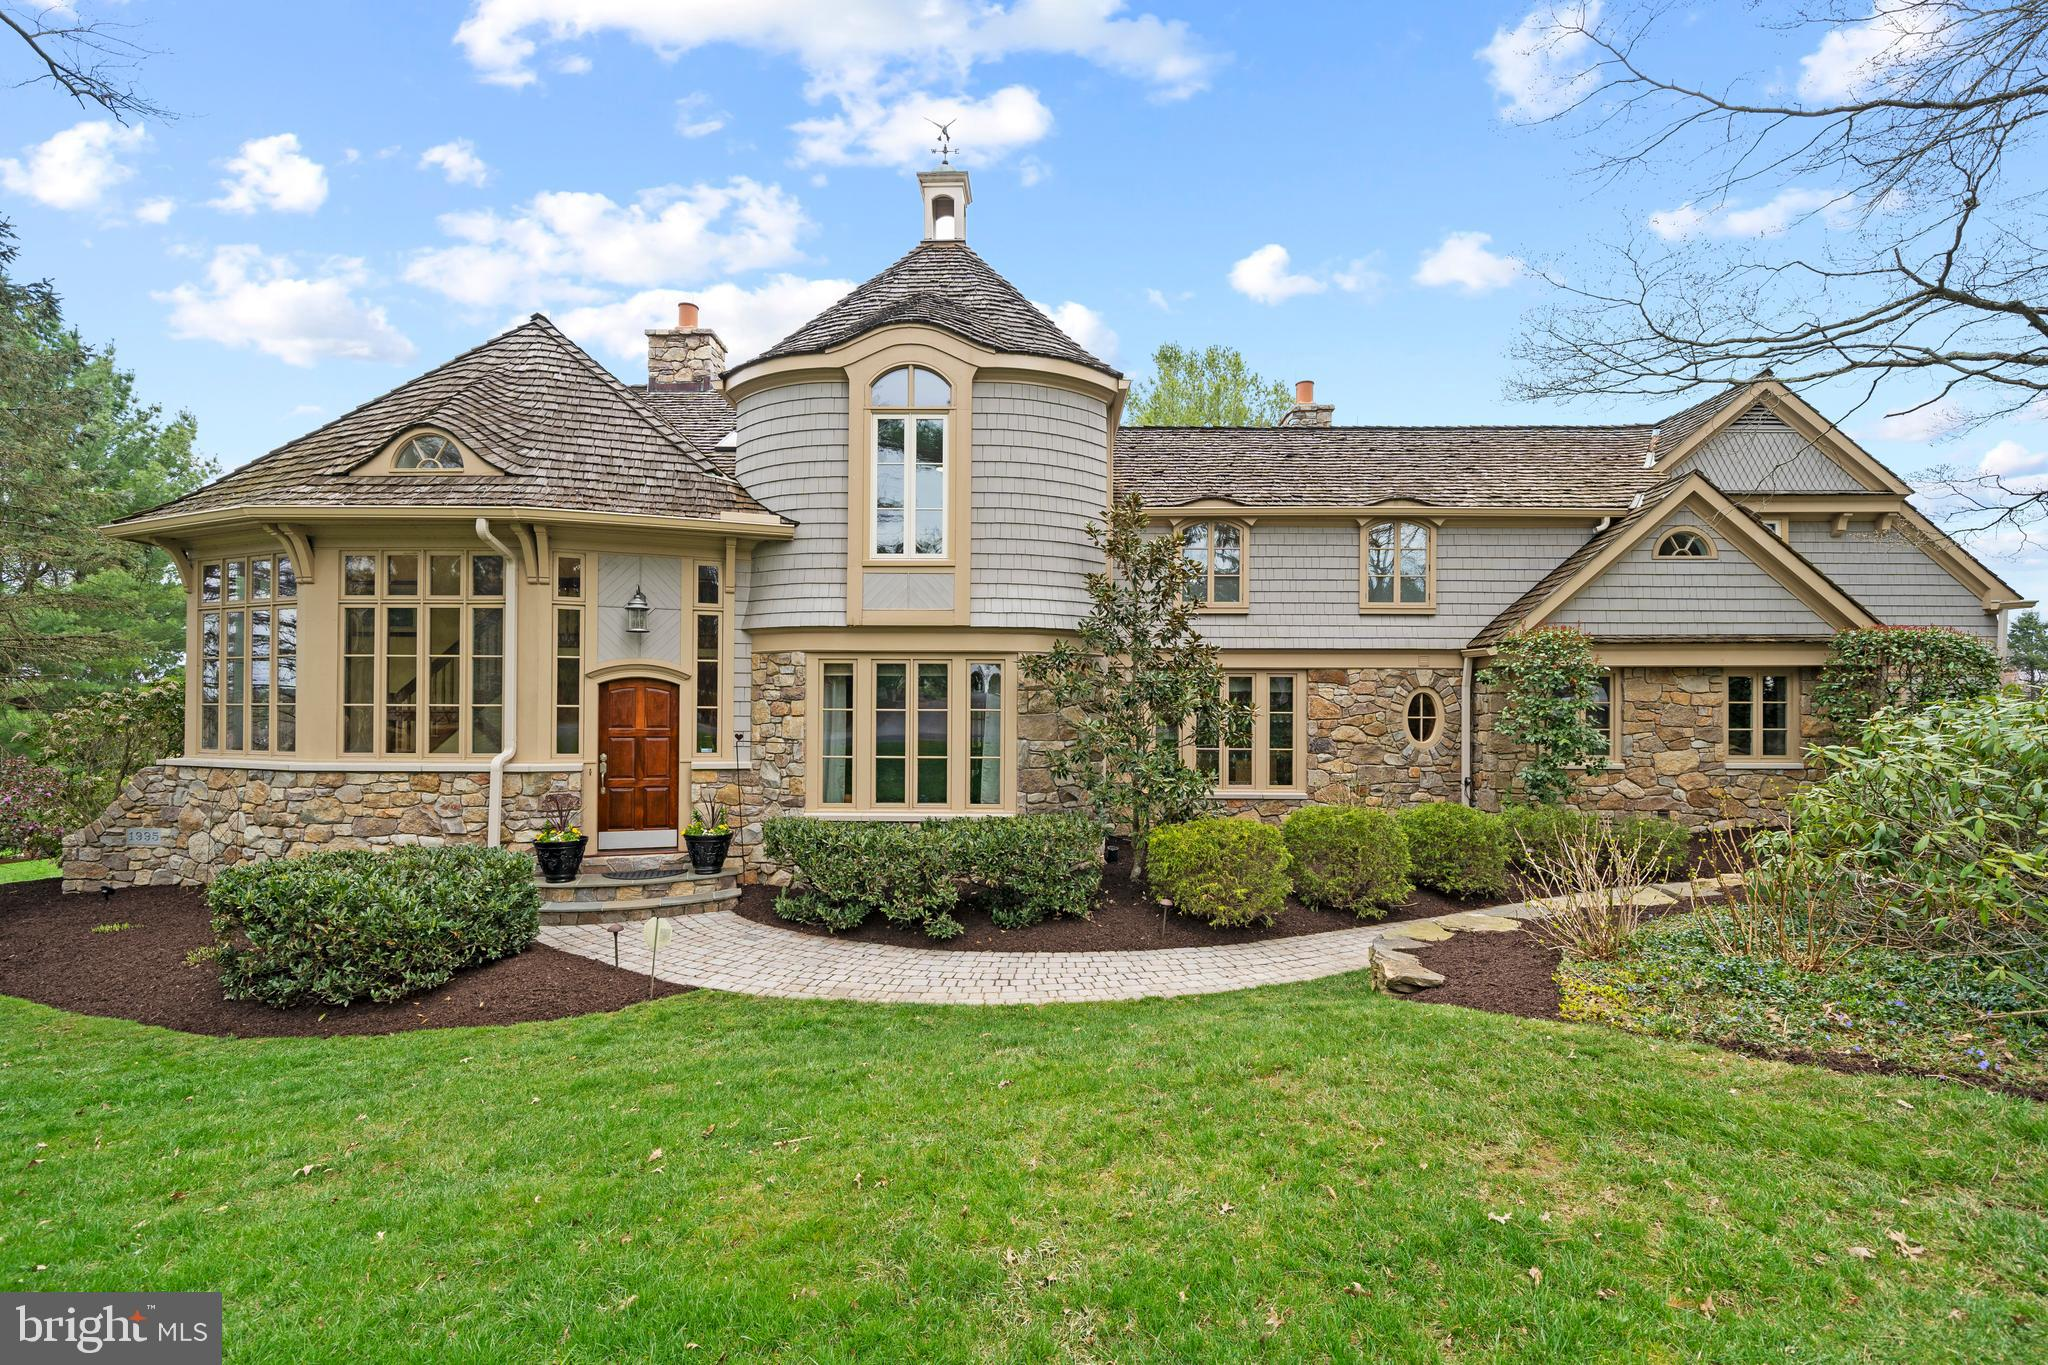 This stunning 5 bedroom, 4.5 bath home is located in the highly desirable Radley Run Country Club Community and Unionville Chadds Ford School District. The minute you pull into the driveway, you will notice the lovely landscaping and hardscaping surrounding the property. The unique driveway, pathways, and patio add to the home's exquisite curb appeal while the spacious patio features raised flower beds and a built in fire pit and grill area overlooking the 8th hole green of the Radley Run golf course. The view is breathtaking! Once inside, you will immediately appreciate the spacious layout, rich hardwood floors, large windows and crown molding throughout. The first floor offers a large formal dining room with pocket doors, a tranquil living room with stone fireplace, and a bedroom/office space with an attached full bath. Also on the first floor, the beautiful kitchen features a breakfast area overlooking the golf course,  stainless steel appliances, and plenty of upper and lower cabinet space. Off the kitchen you will find the expansive family room with bar area, two story stone fireplace and window wall. The laundry shoot located outside the laundry room is a great bonus feature! A spiral, back staircase makes it convenient to get to the large recreation room on the second floor. On the second floor you will also find three spacious bedrooms, the master bed/bath, and two more full baths.  All  4.5 bathrooms were recently renovated and feature gorgeous tile work and brand new vanities. The master bedroom features raised ceilings and an abundance of closet space, all of which are designed by California Closet. The luxurious master bath is an oasis with a double vanity, walk-in, marble shower, and soaking tub. Lastly, the fully finished basement offers plenty of lounge/recreation space as well as multiple closets for storage. This home is truly one of a kind, you do not want to miss out!! Expected date on market: April 29th.